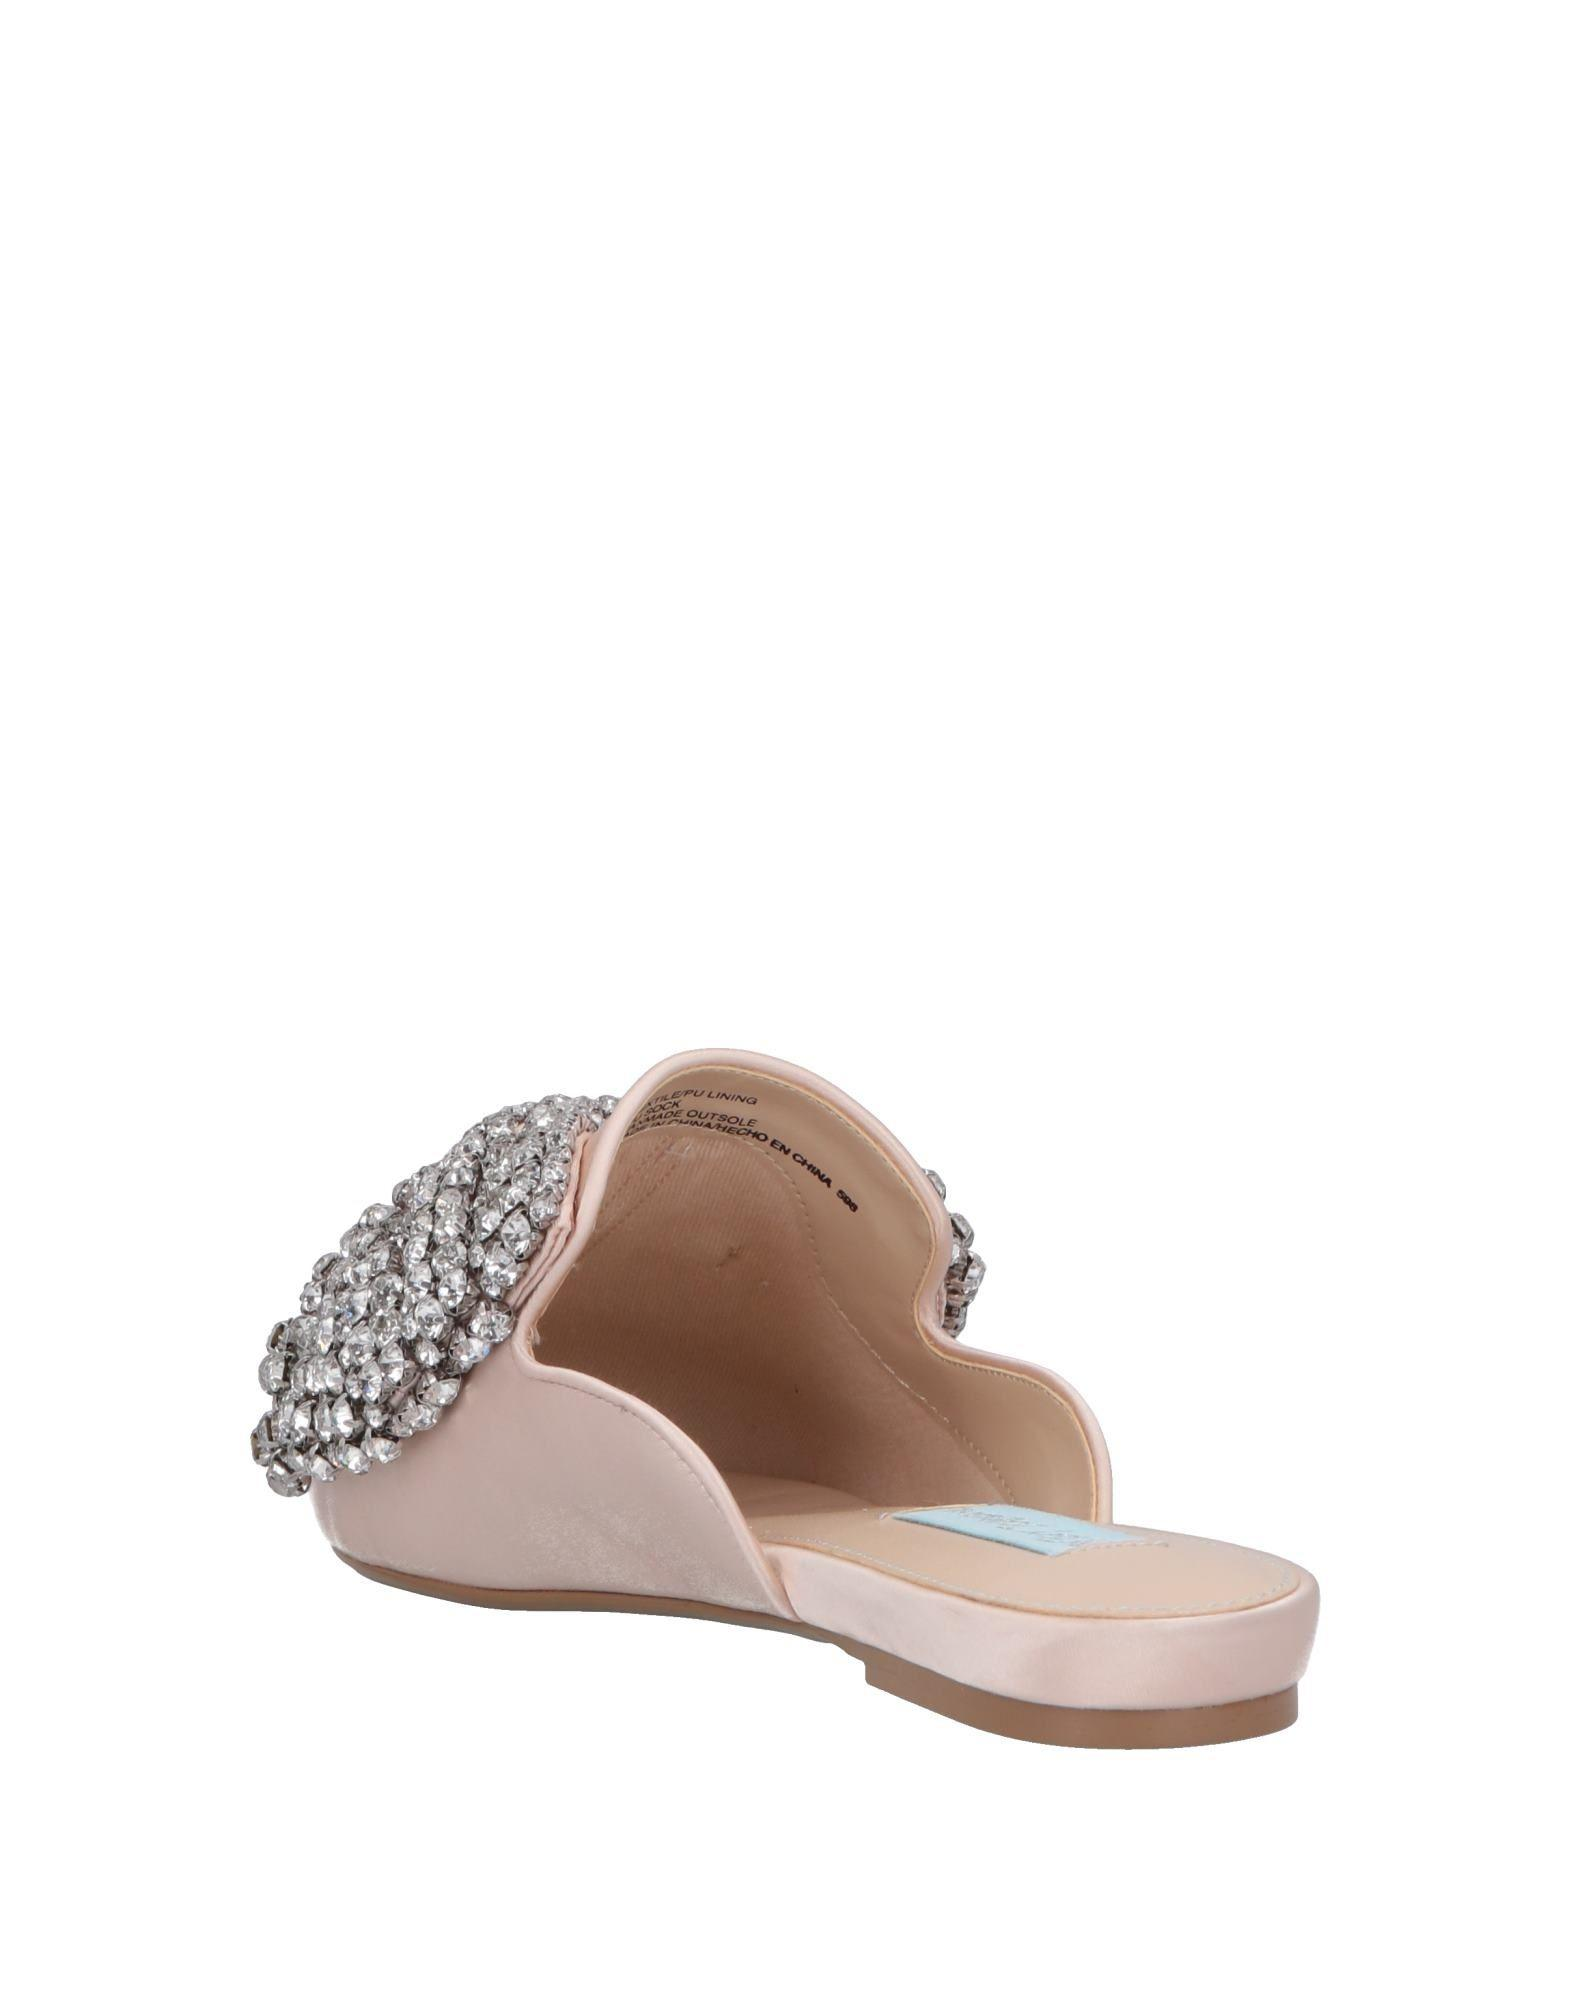 a58513edcdf9 Lyst - Betsey Johnson Mules in White